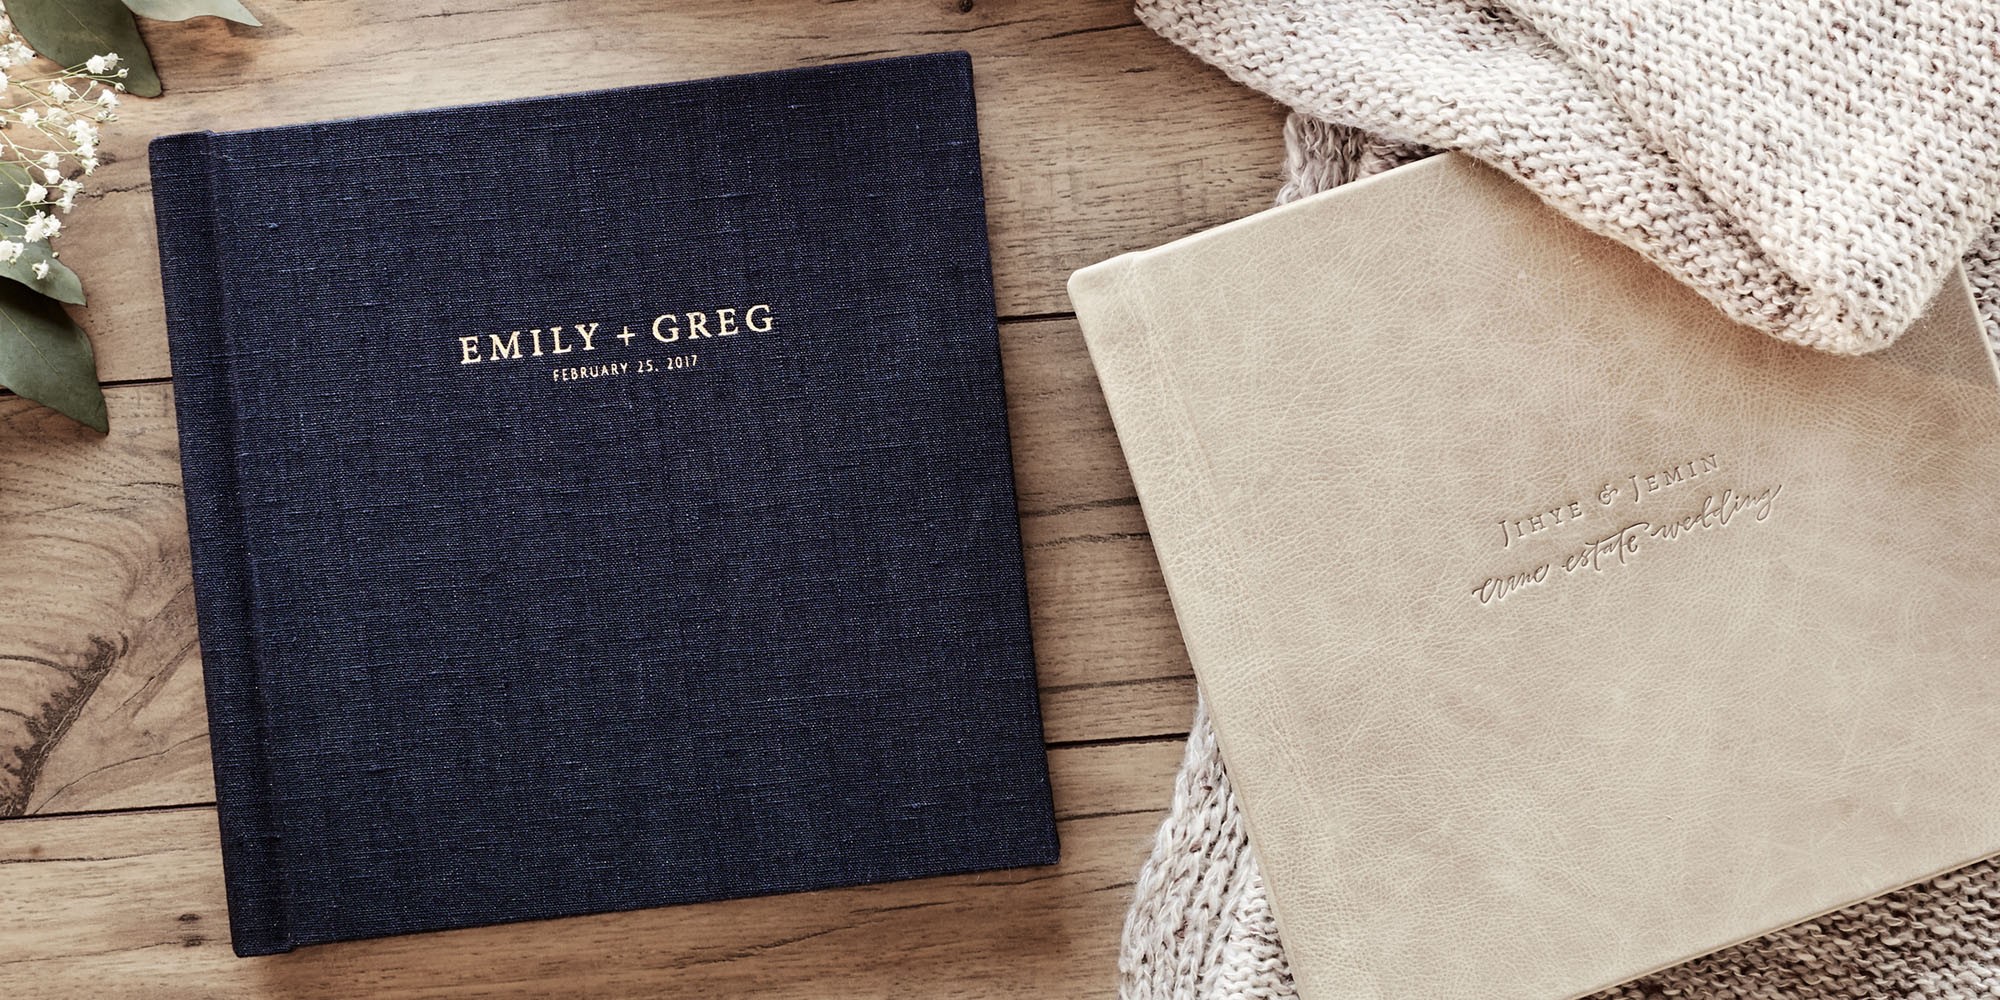 You can opt to deboss your names and/or your wedding date on the front of your album. this is totally optional, as some people would rather have the front cover be simple and plain. Debossing is a $25 add on.